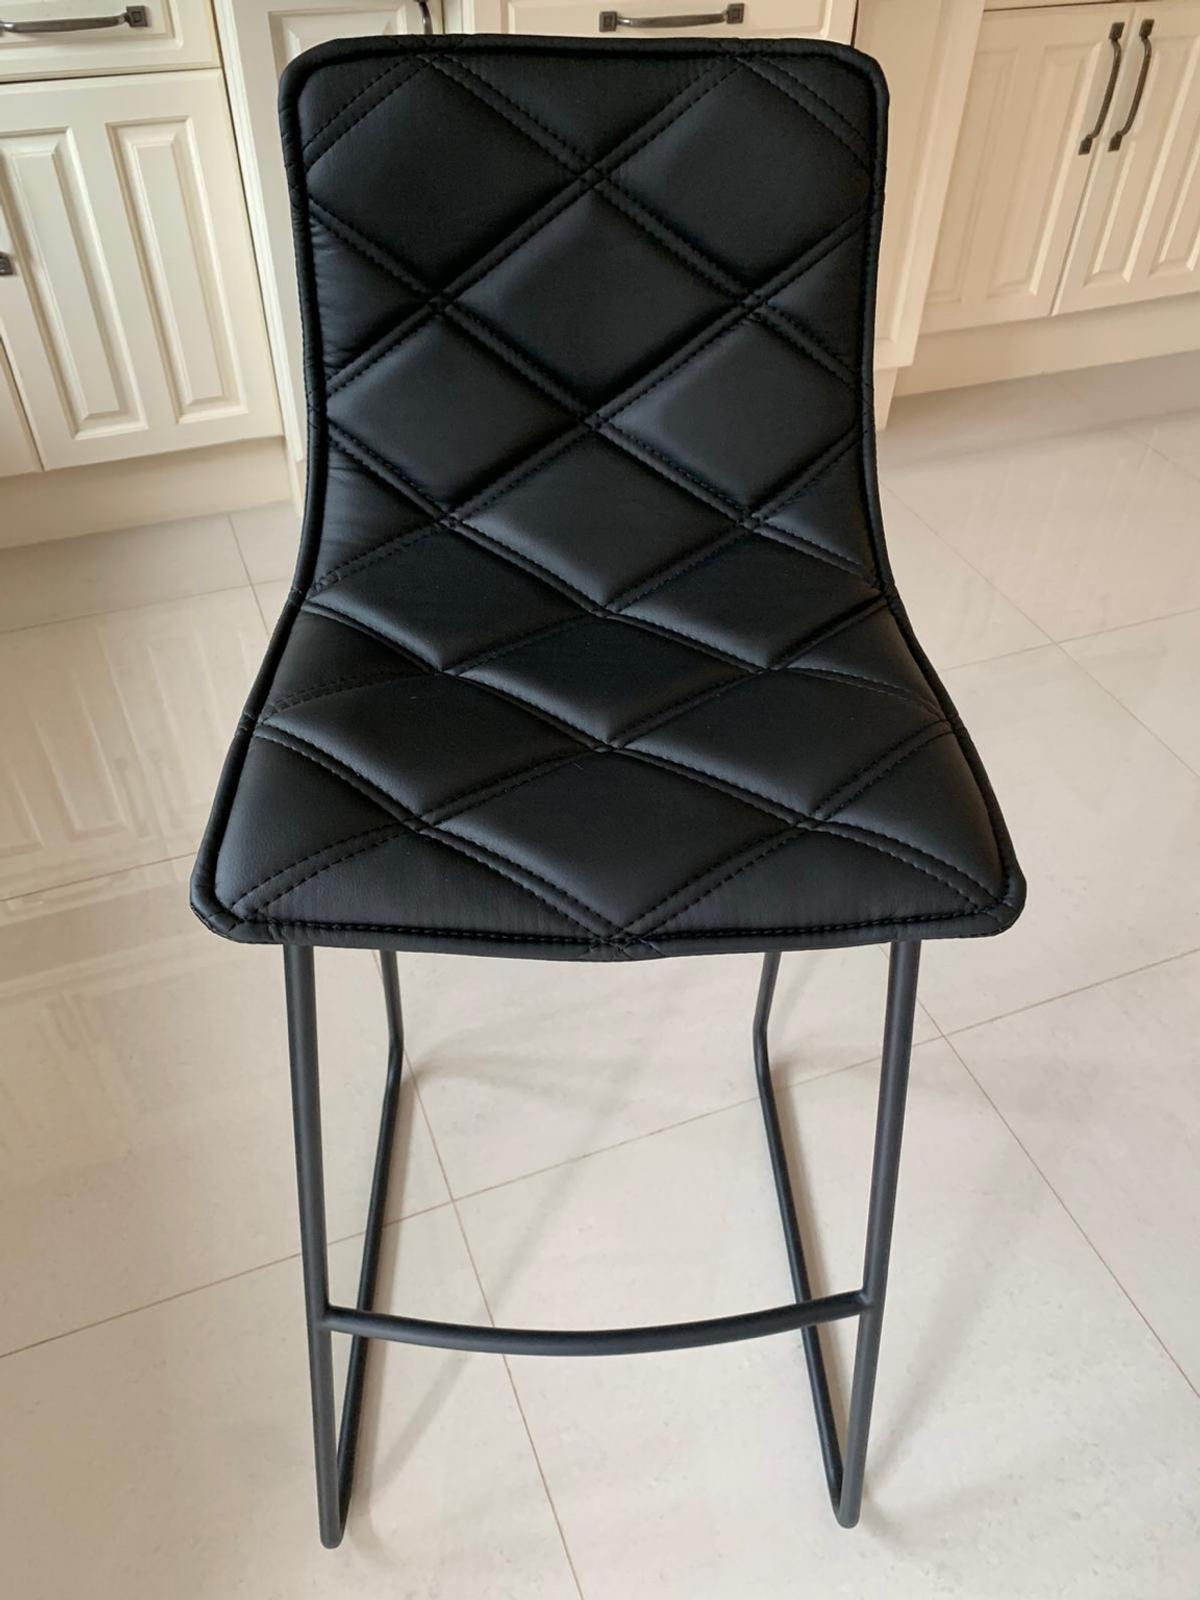 Magnificent Dwell Portela Bar Stools Caraccident5 Cool Chair Designs And Ideas Caraccident5Info